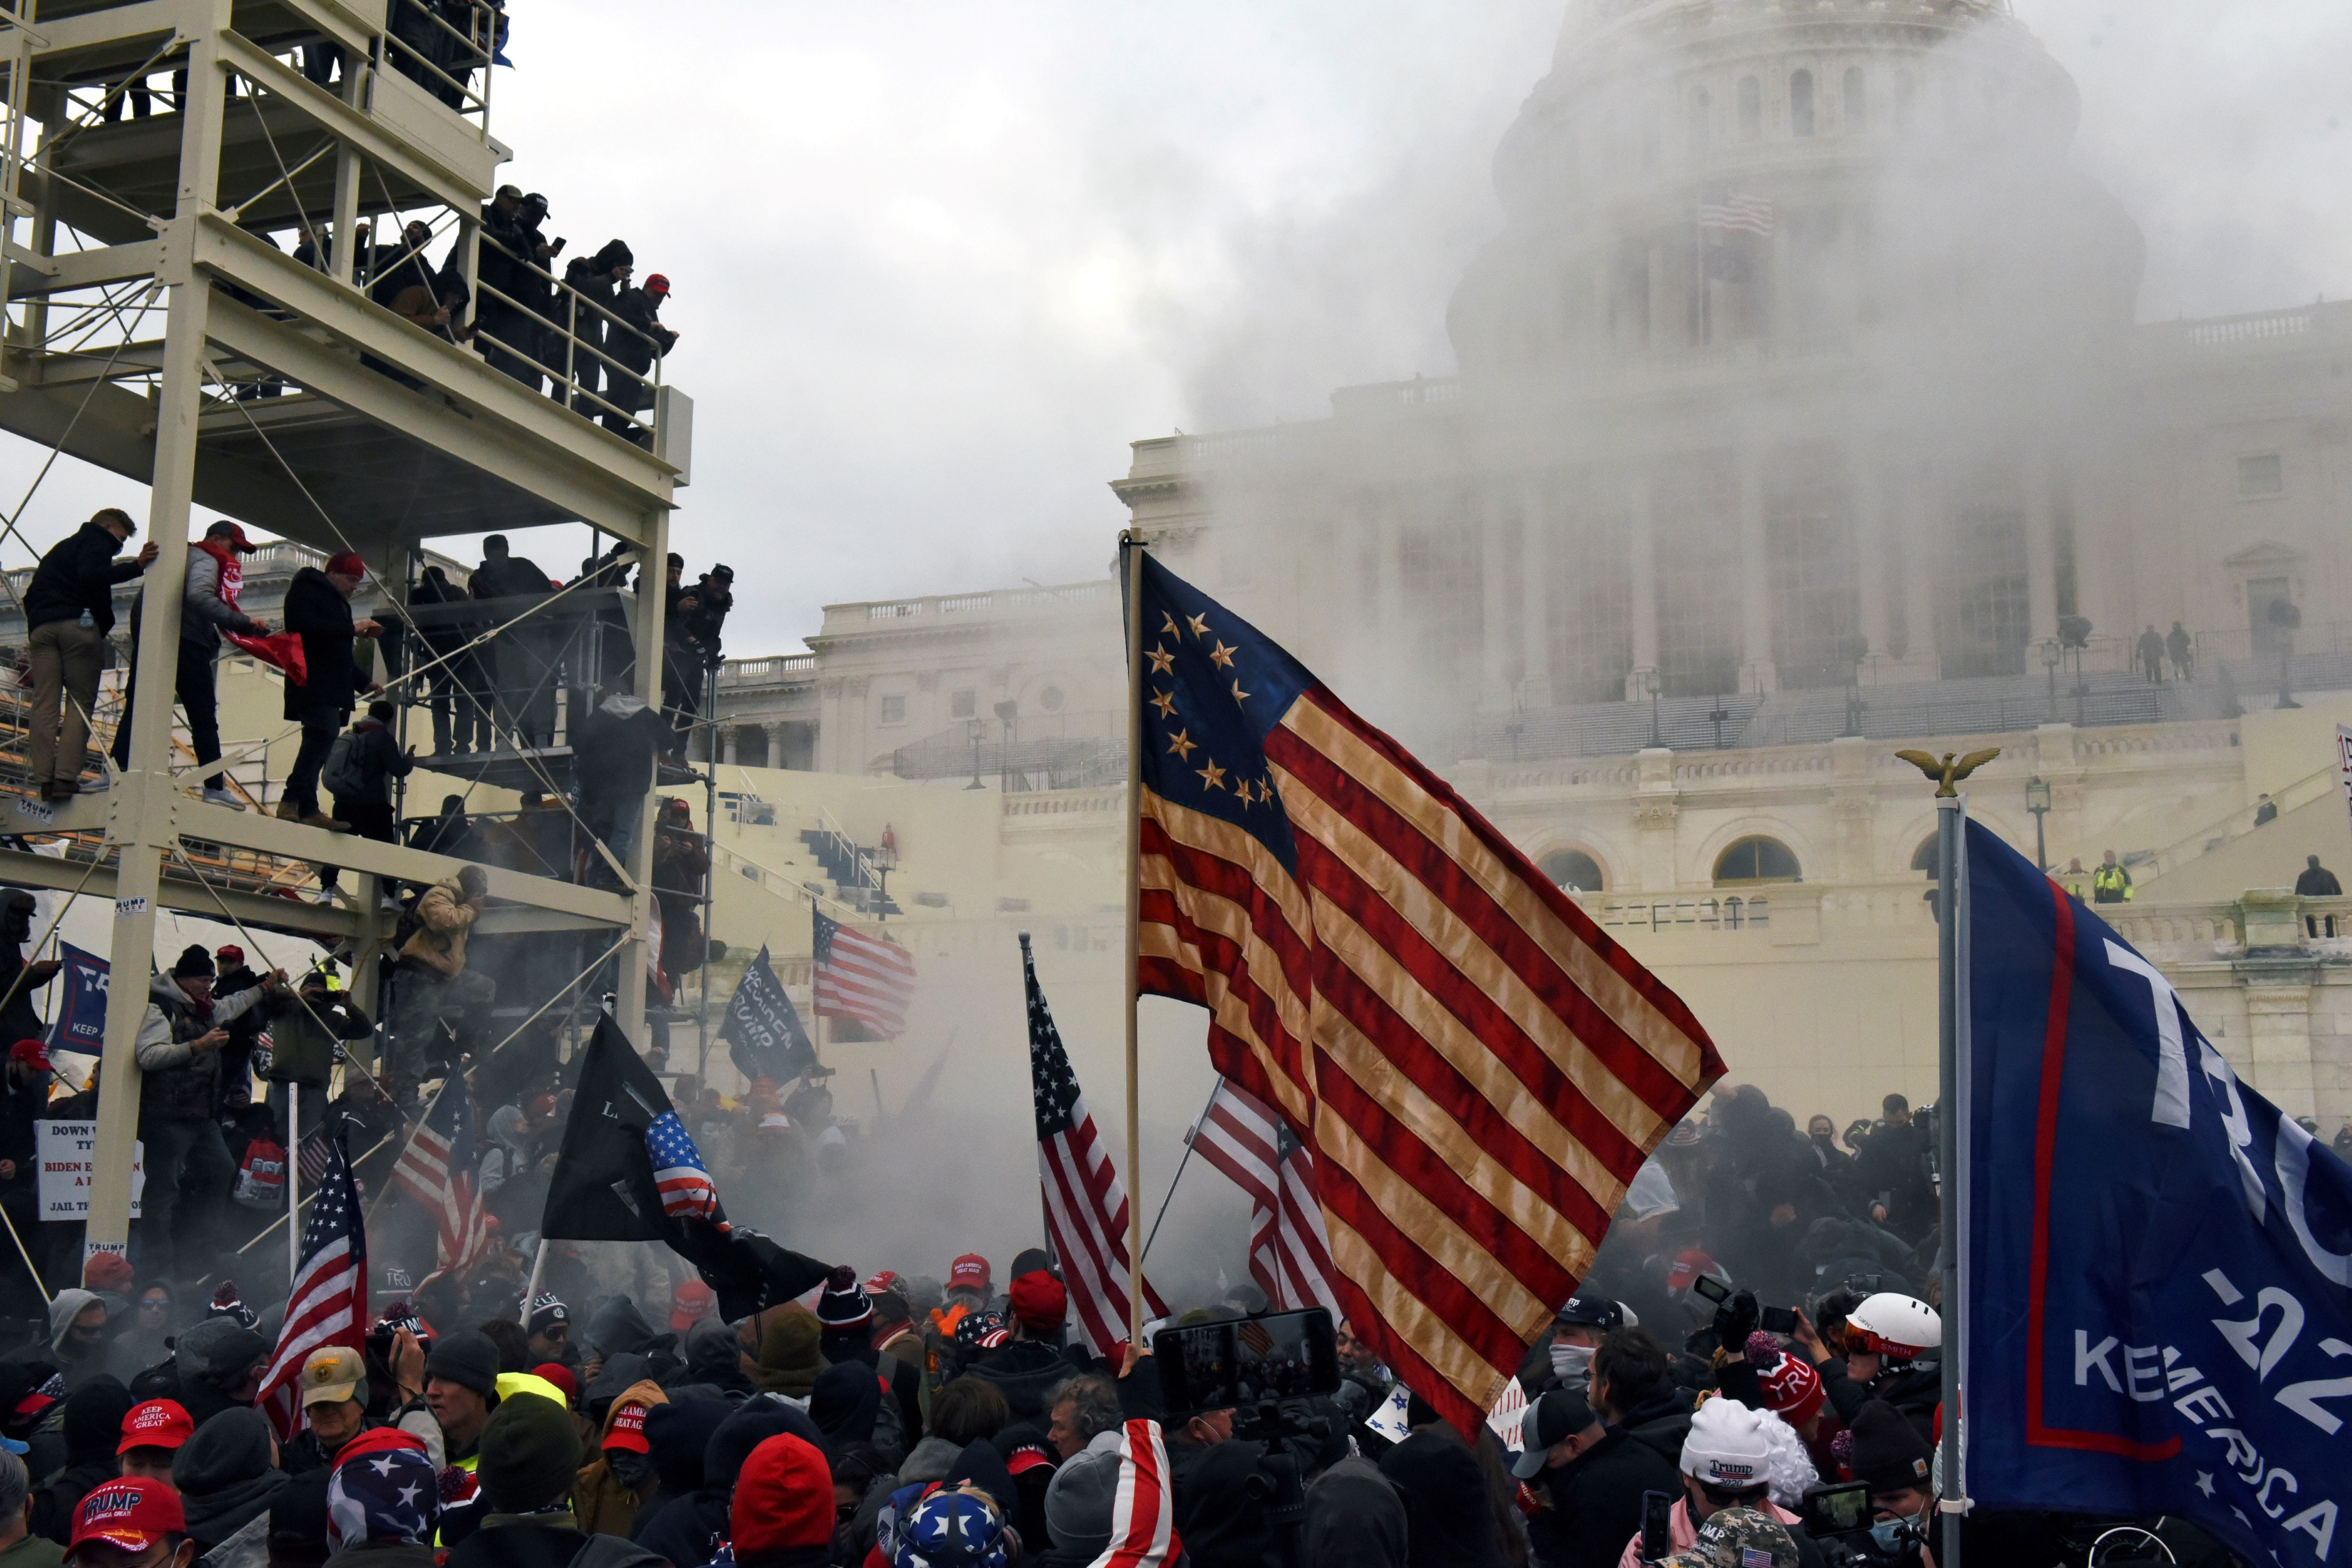 Tear gas at the Capitol on January 6, 2021